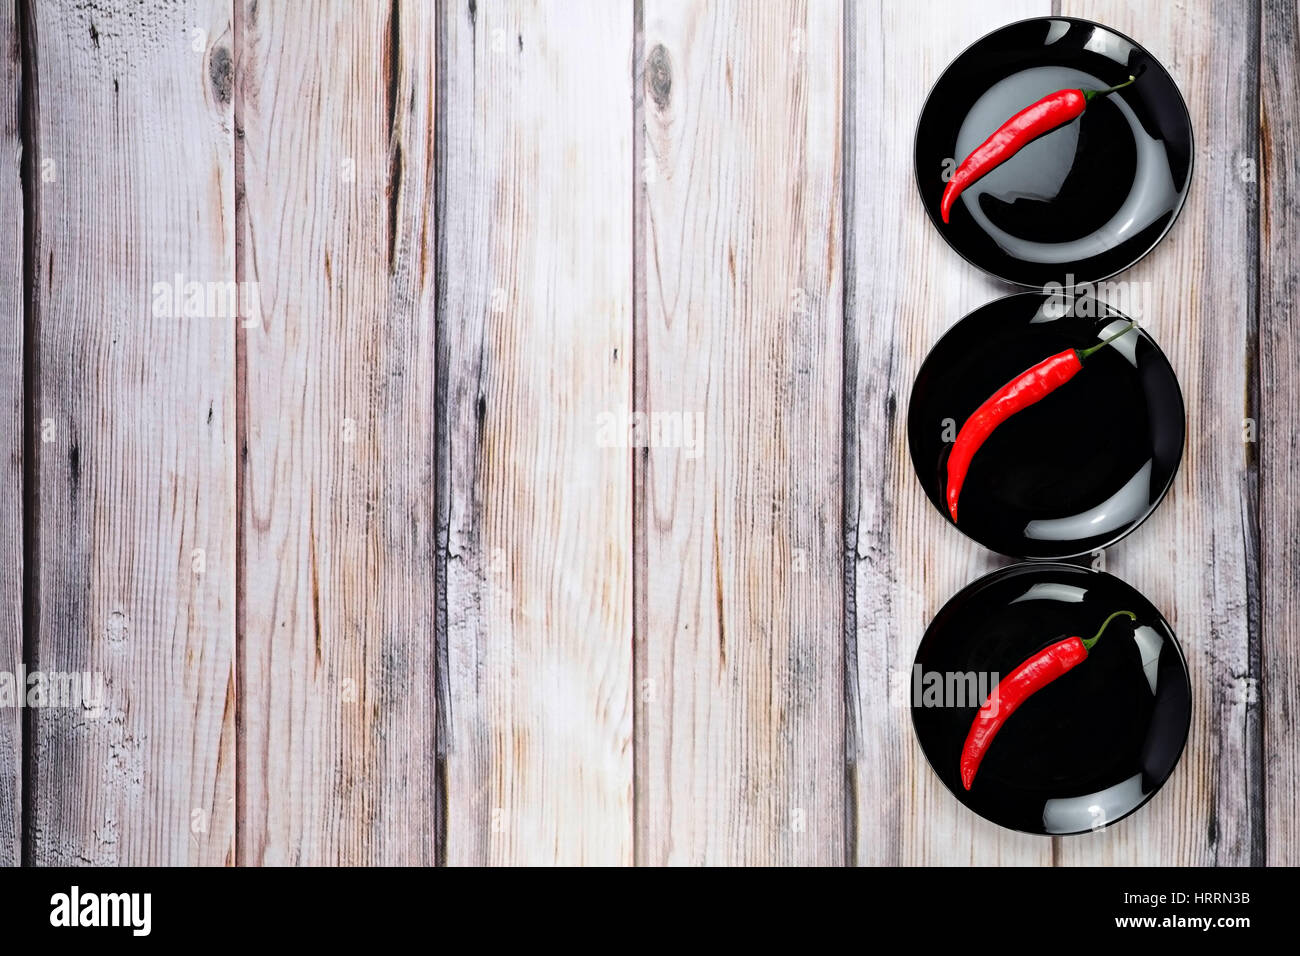 Red pepper on black dish. Black plates on wooden table. Bright food background. Free space for text on wooden background. - Stock Image